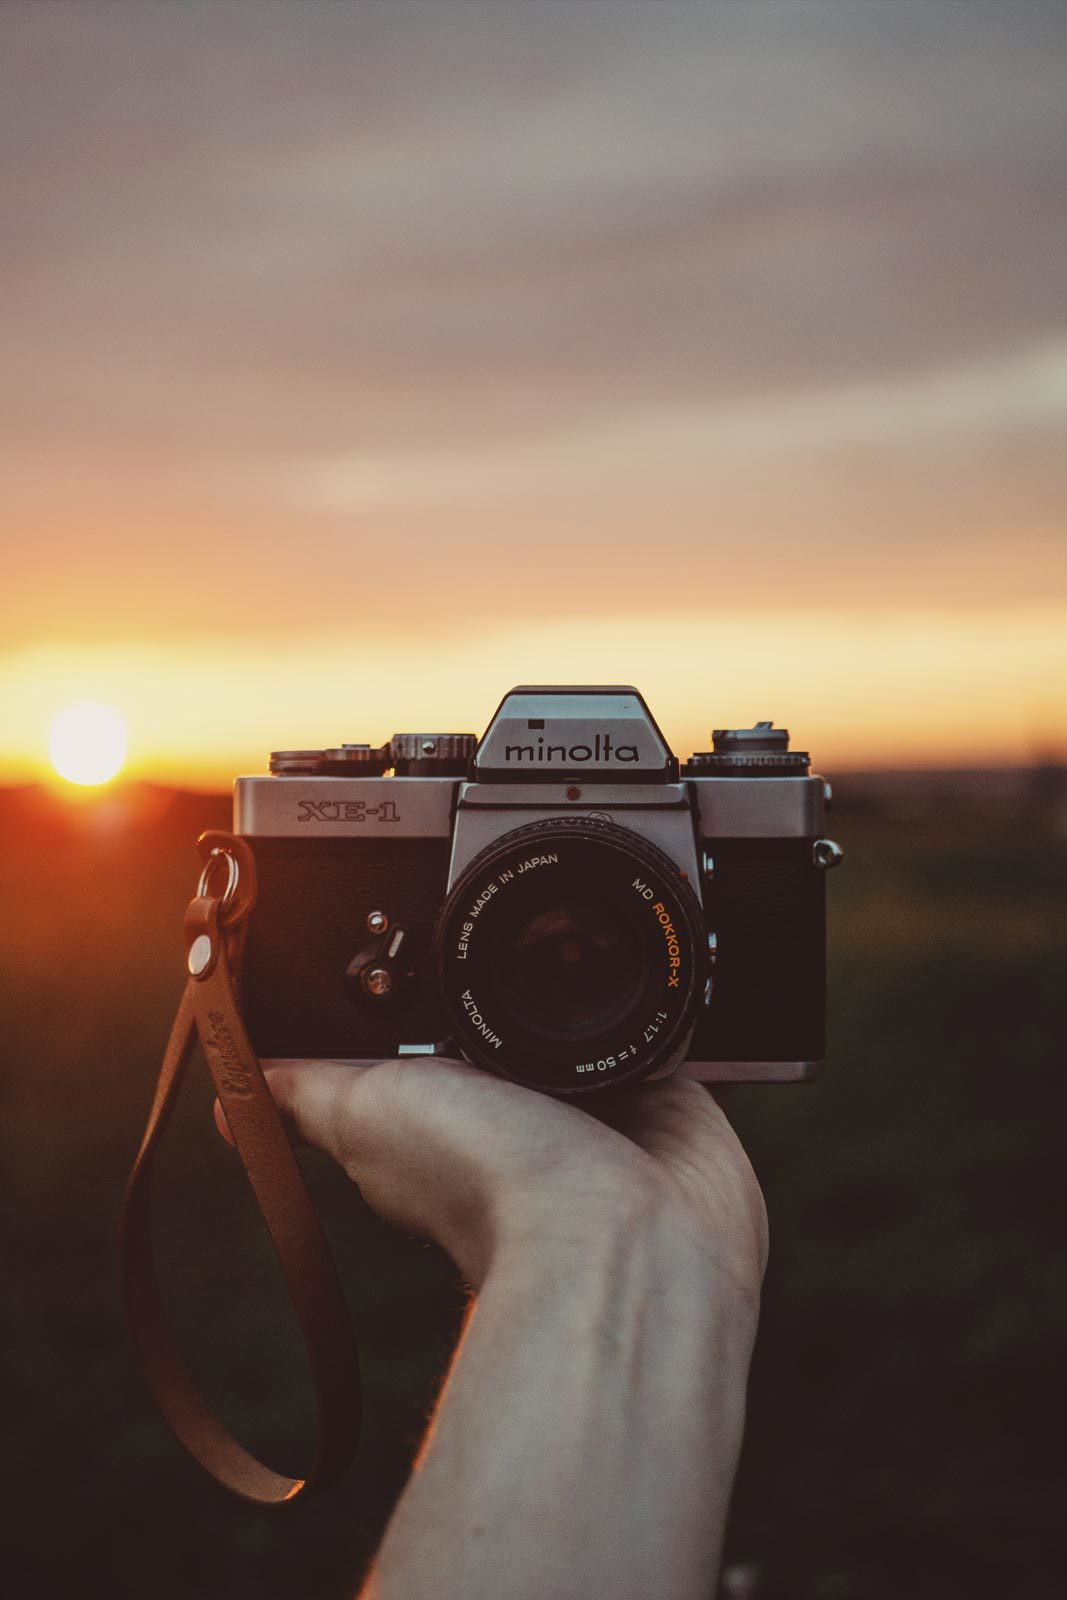 Hand holding camera over field with sunset.